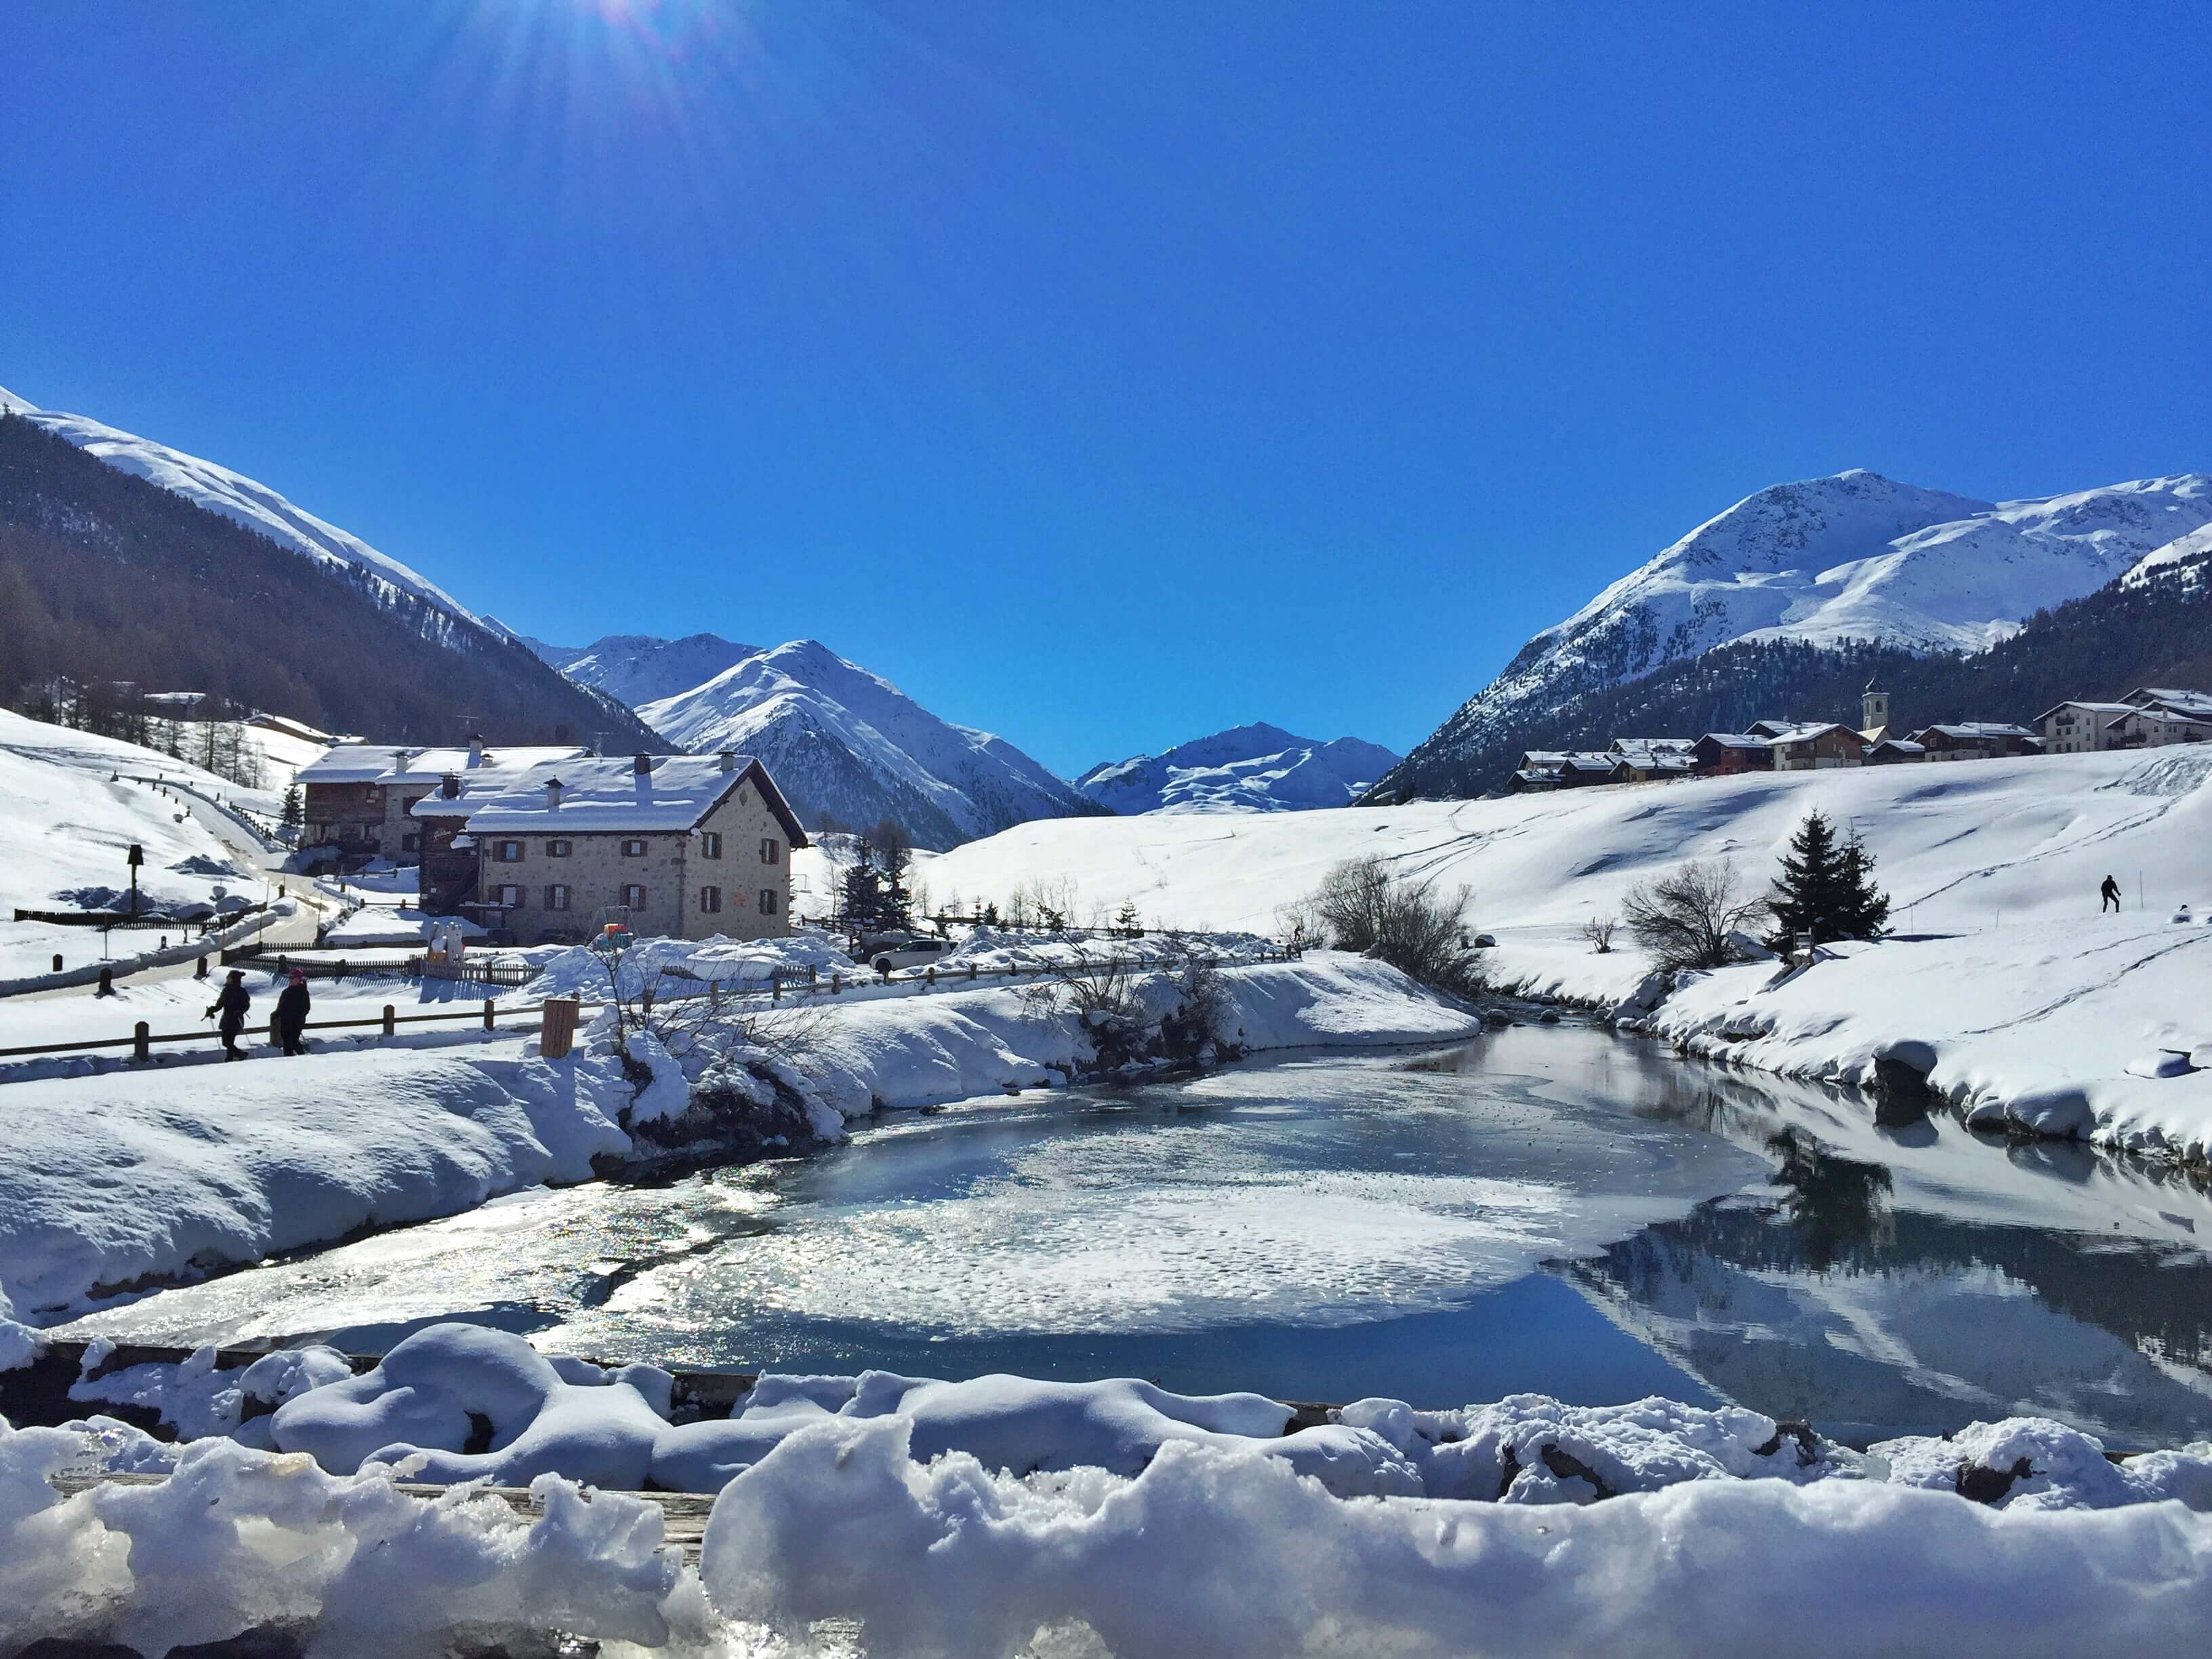 Winter activities in Livigno